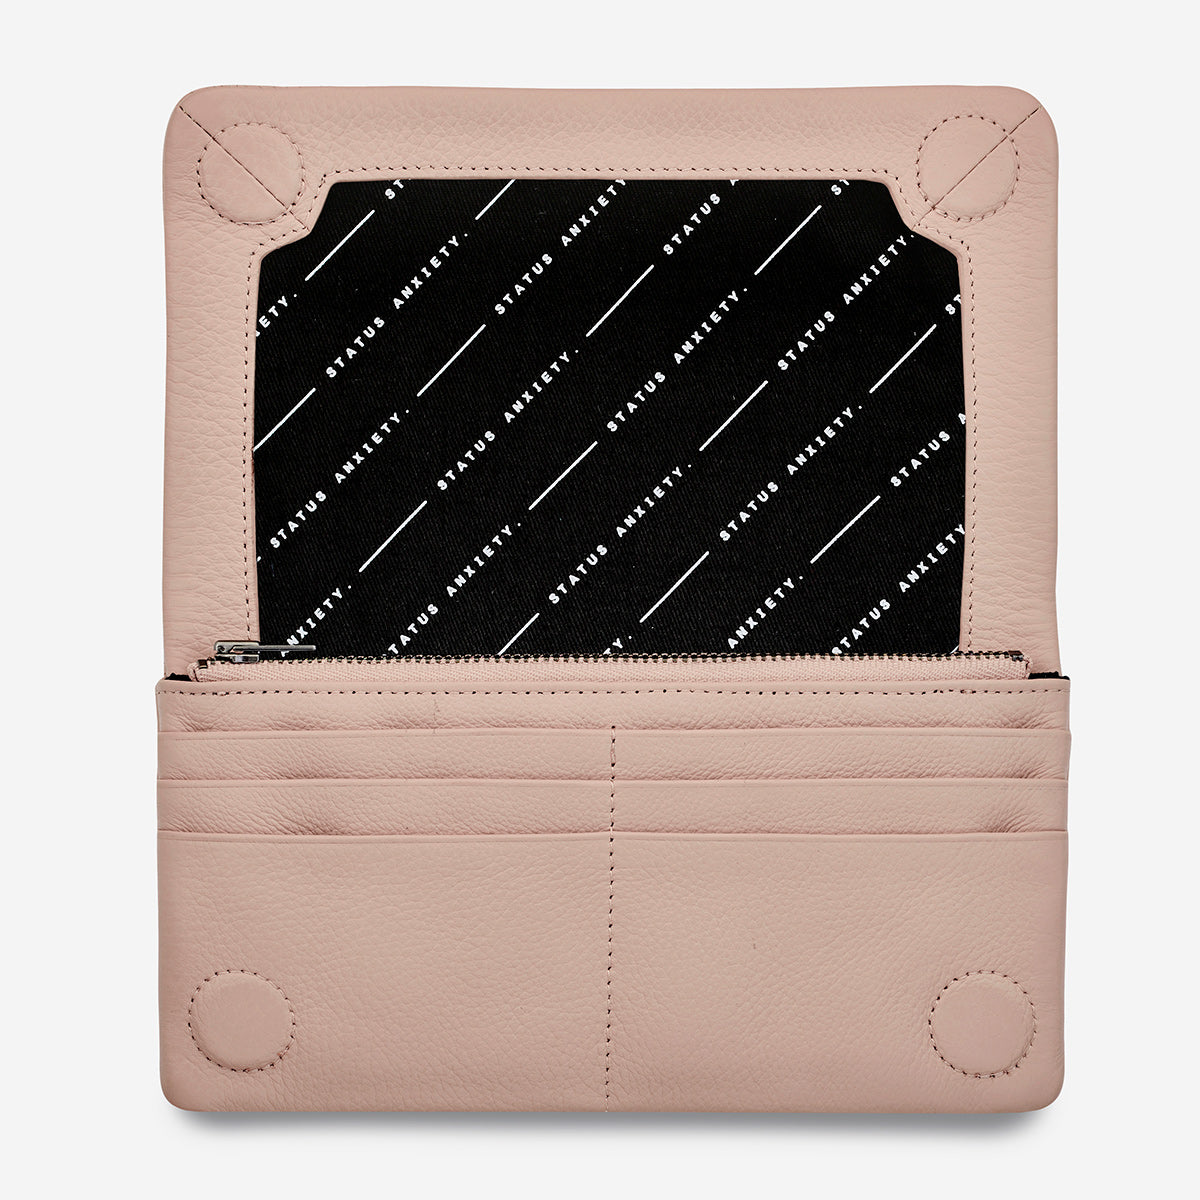 Status Anxiety Some Type Of Love Leather Wallet - Dusty Pink